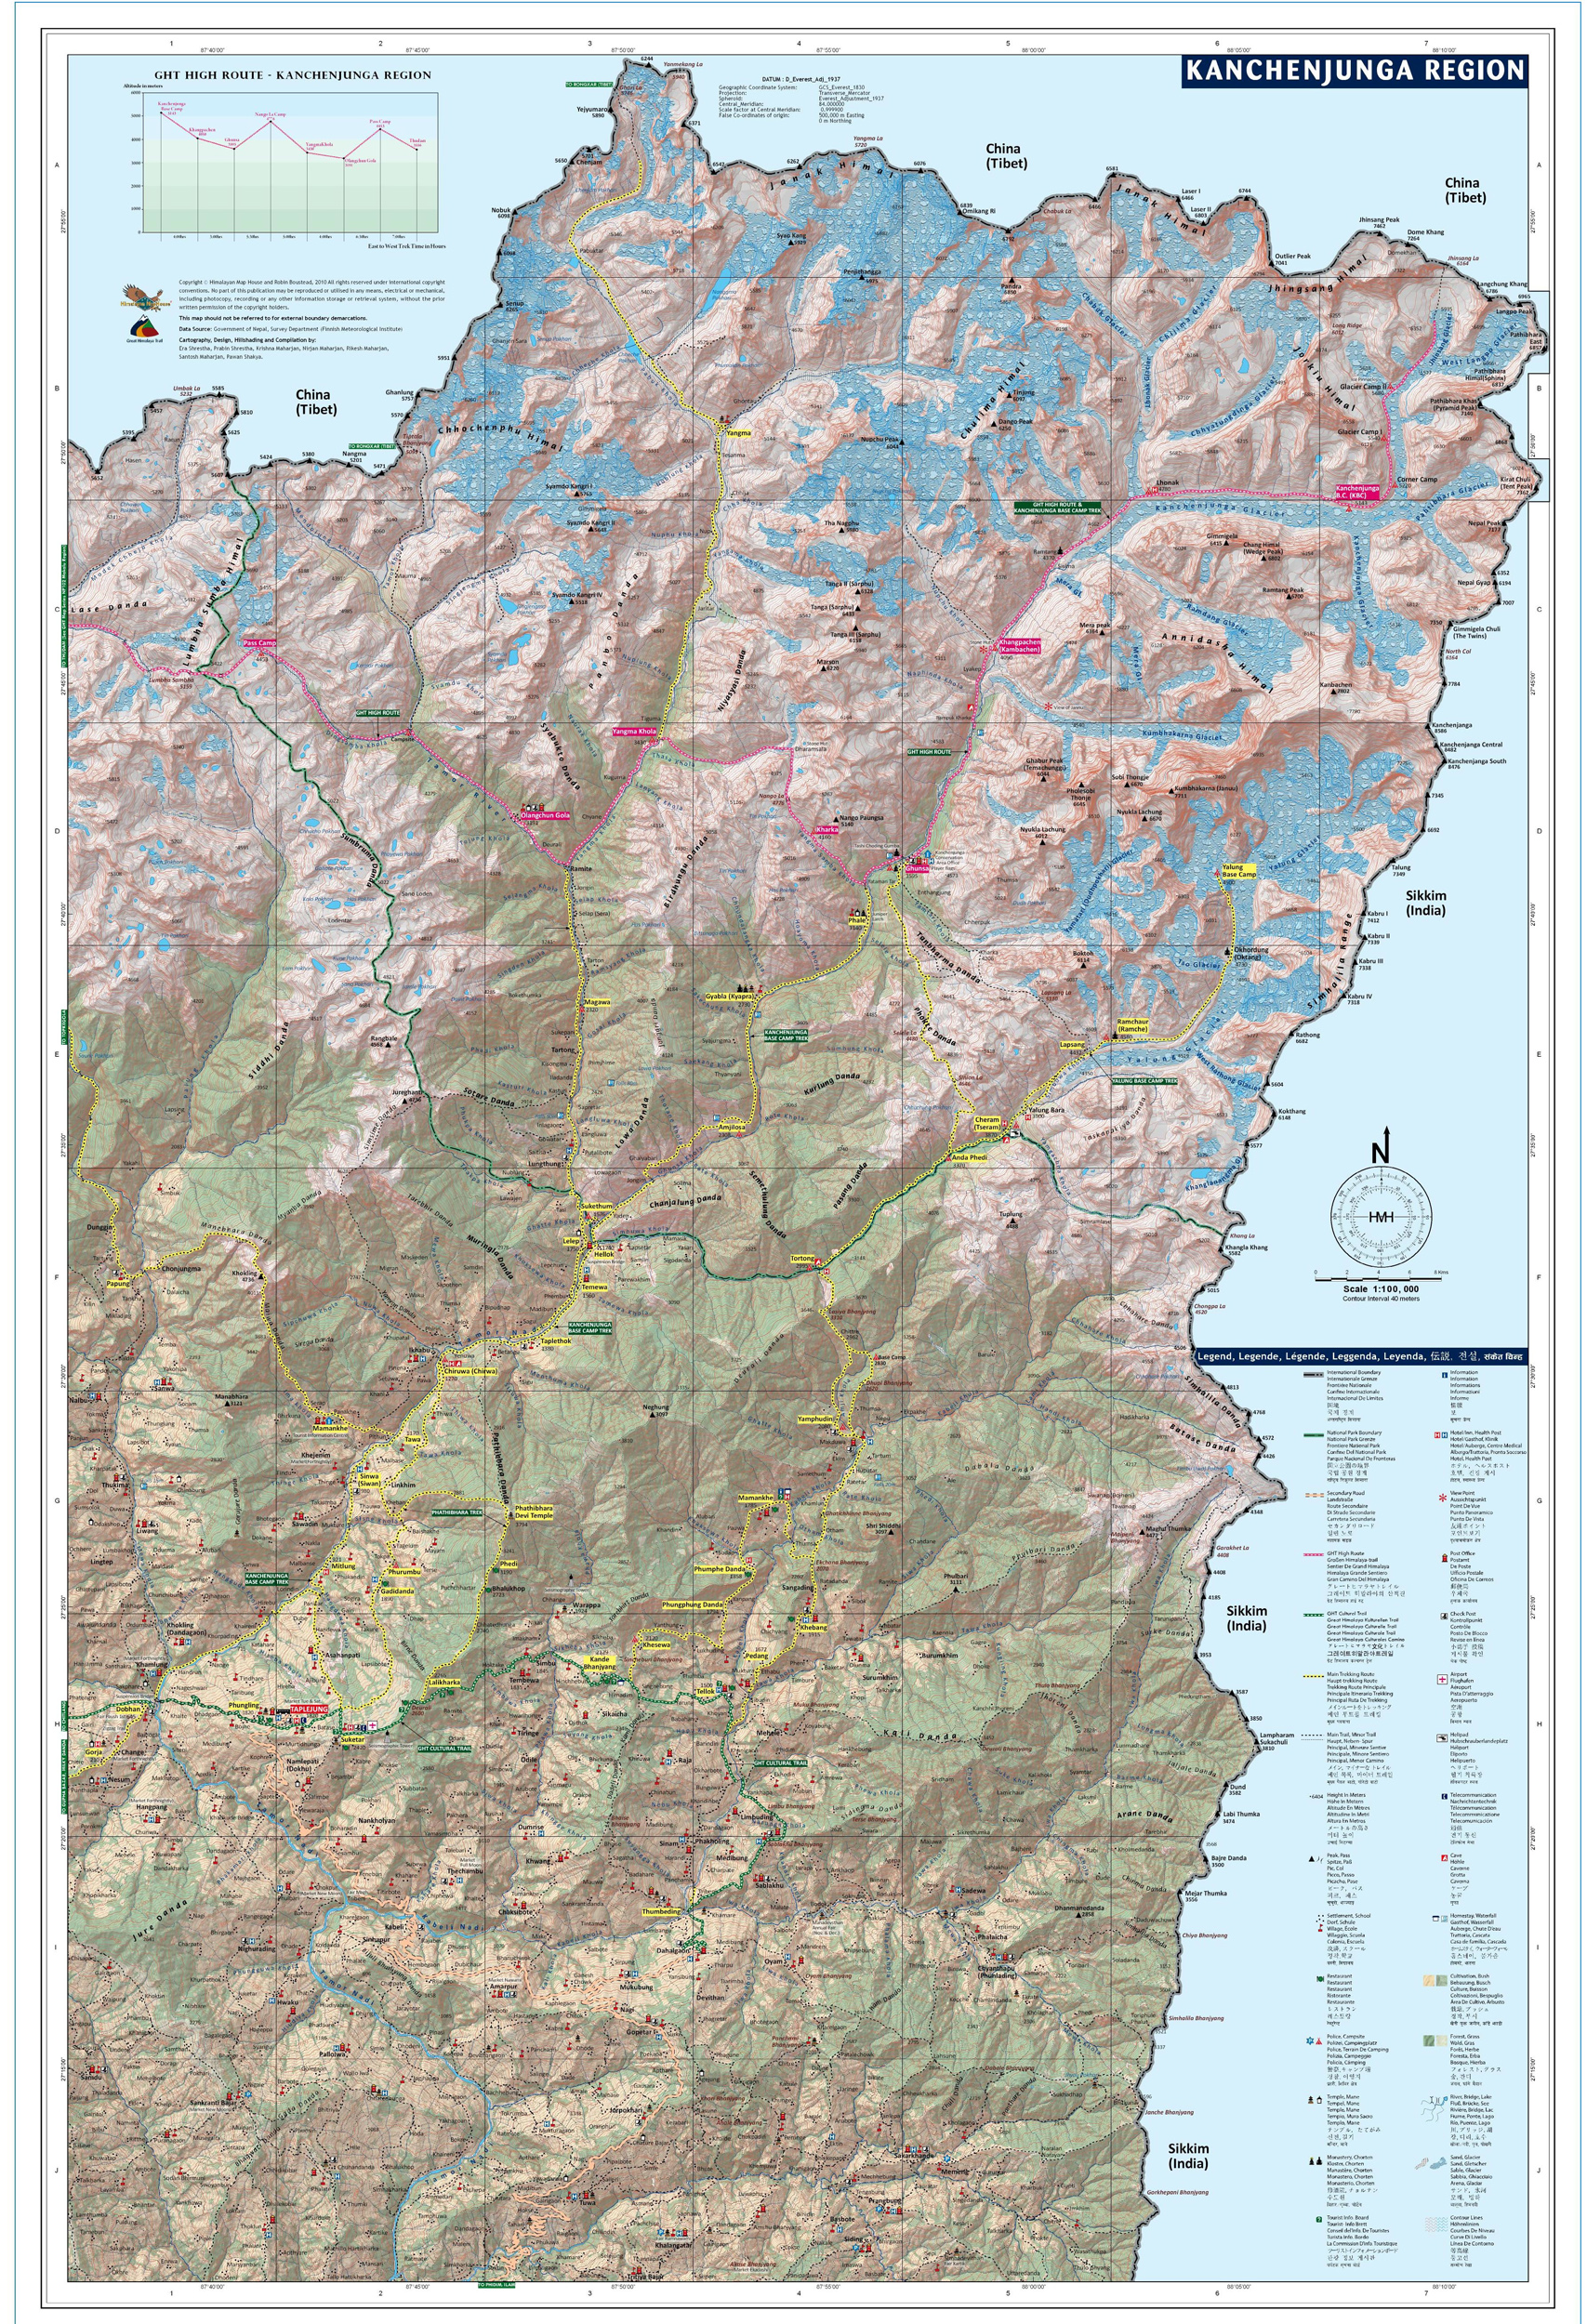 Maps of the Kangchenjunga Region